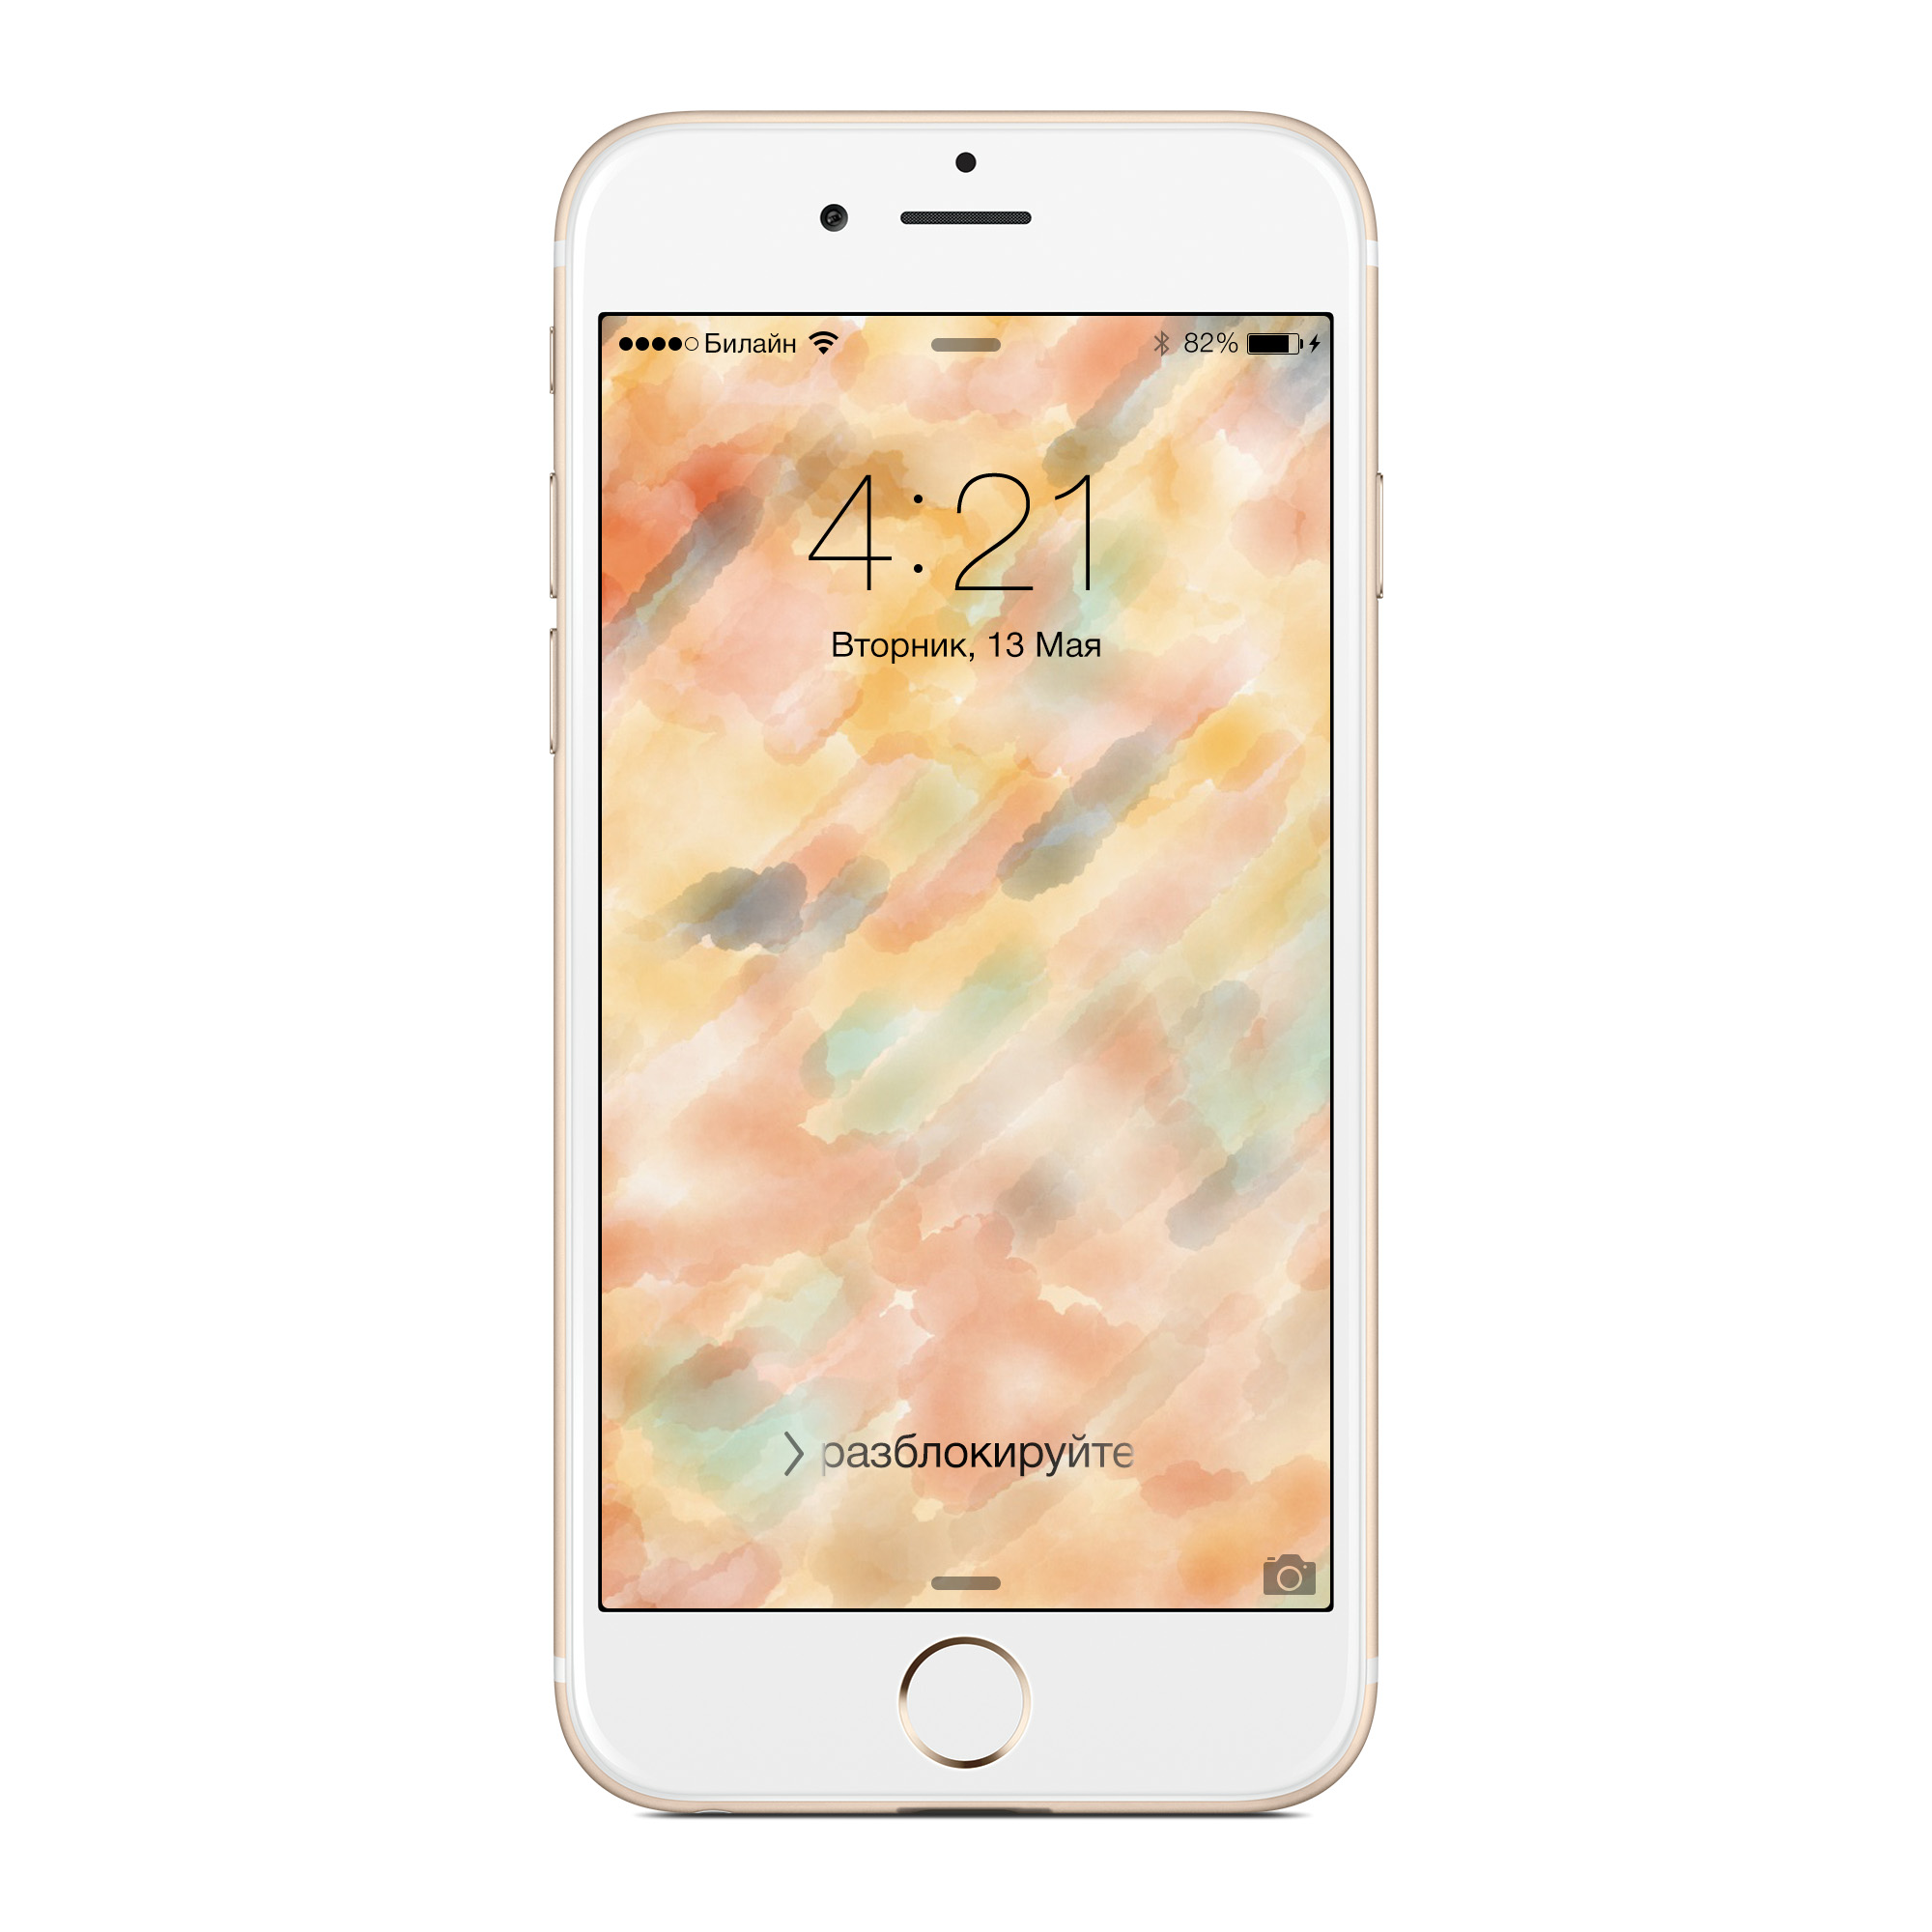 Watercolor wallpaper for iPhone